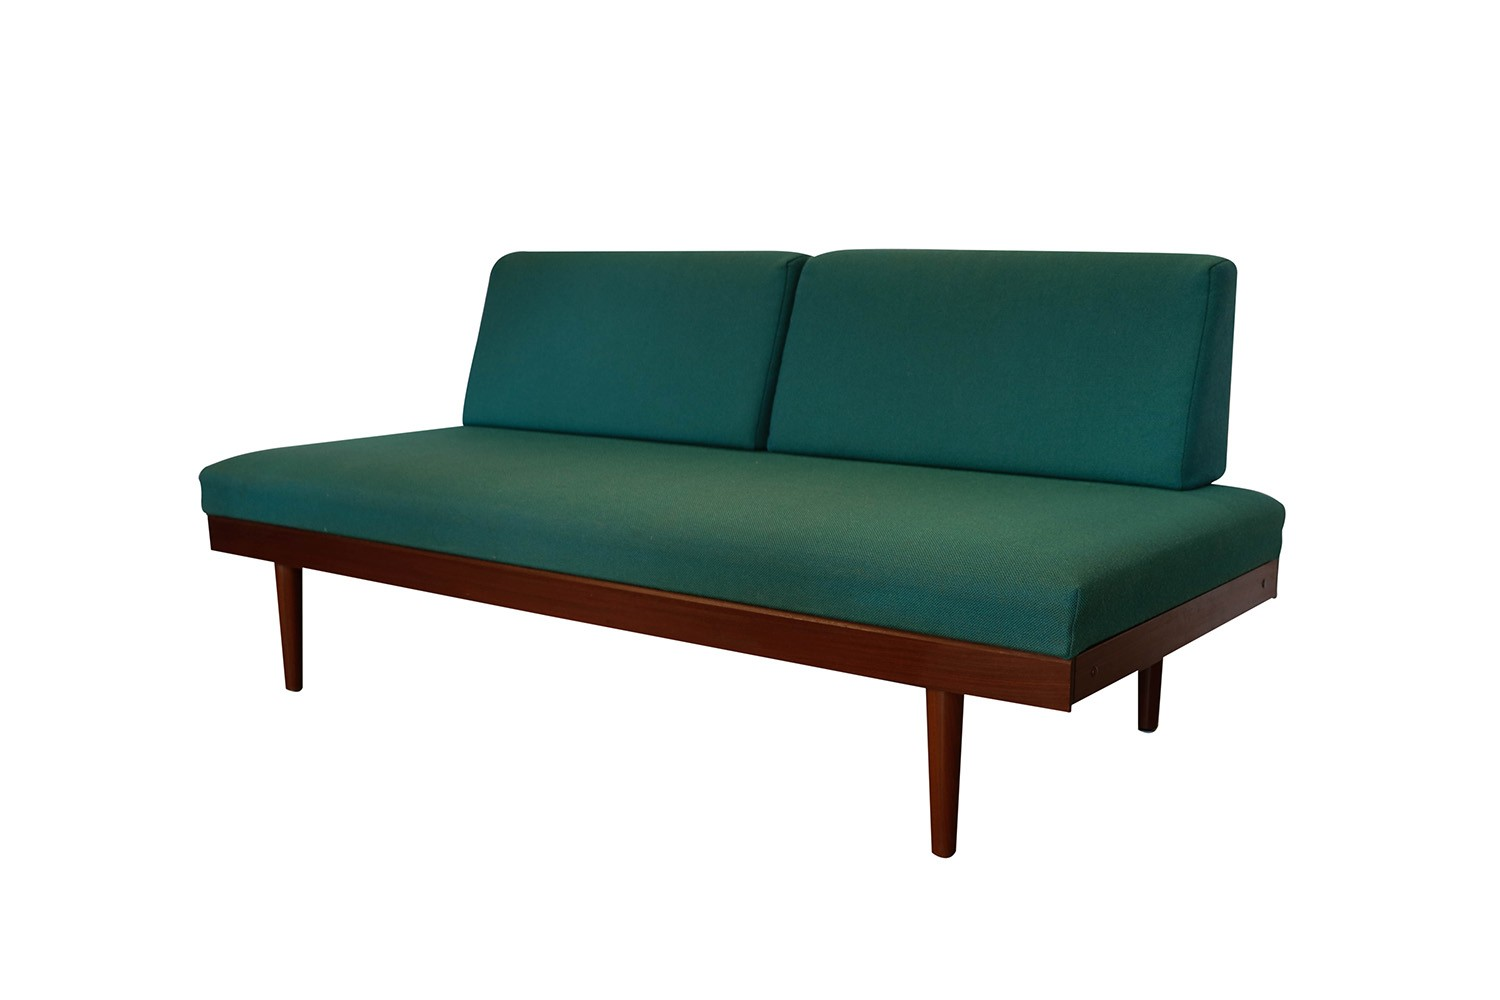 Norwegian Modern Teak Daybed Sofa Pull Out Tables Edvard ...